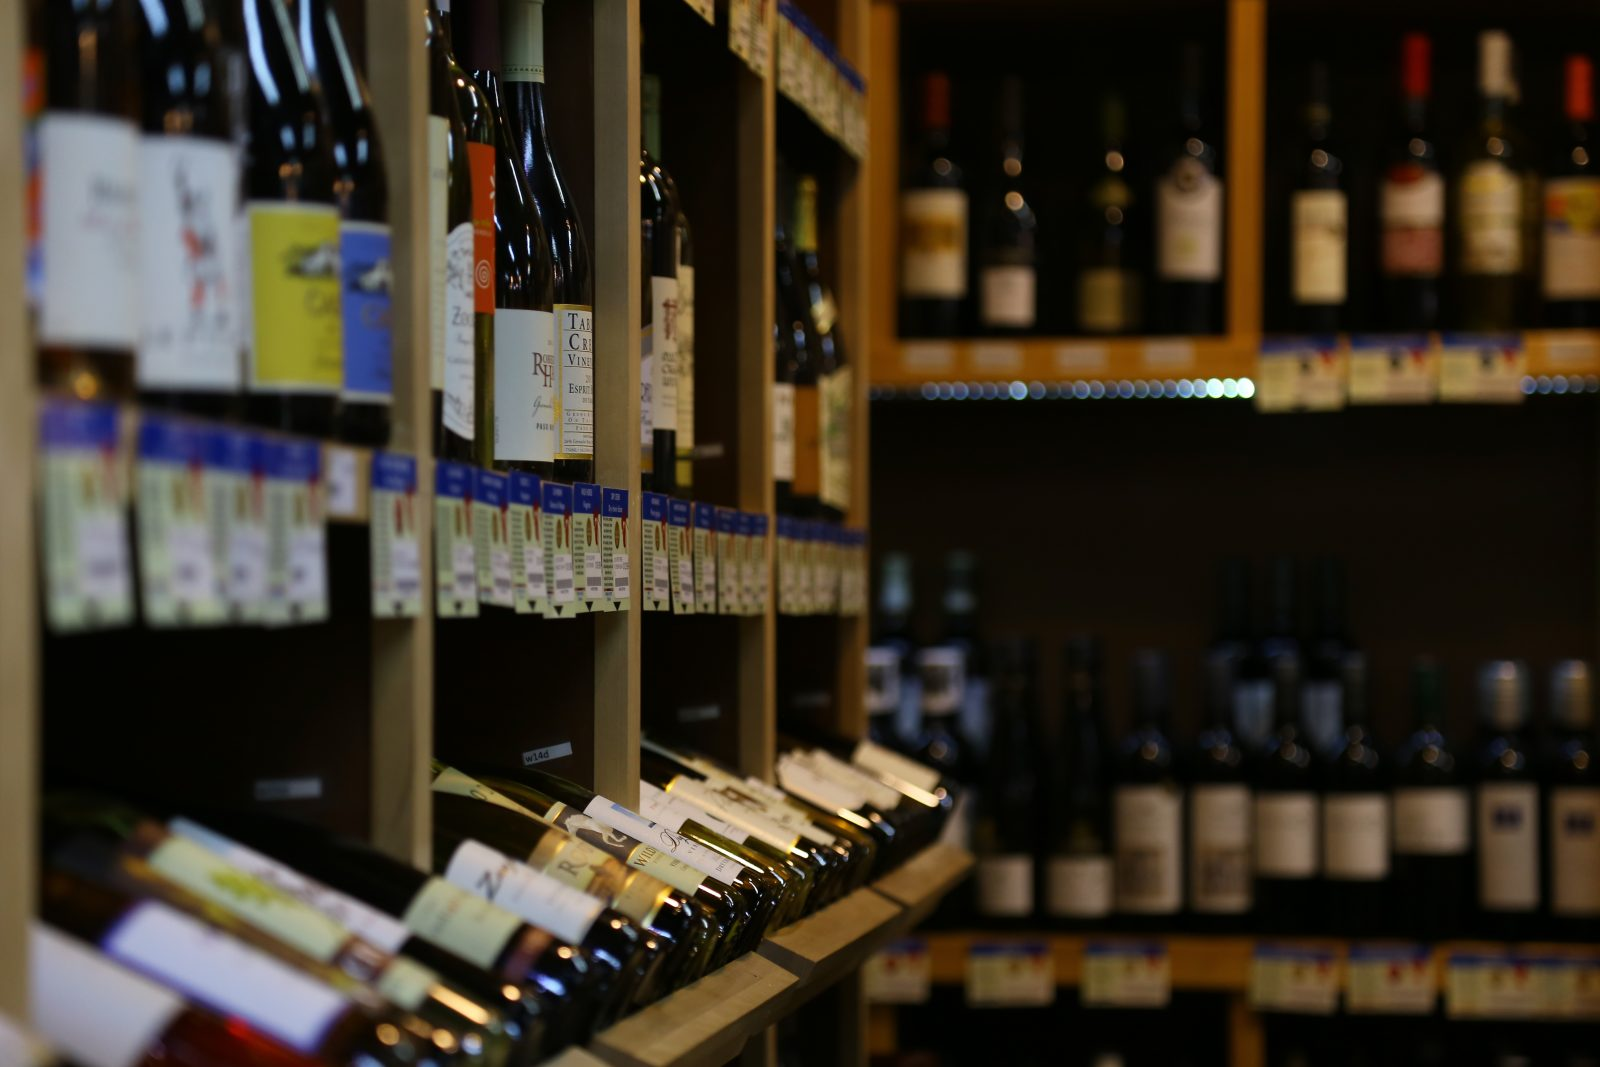 Bottles of wine for sale in store